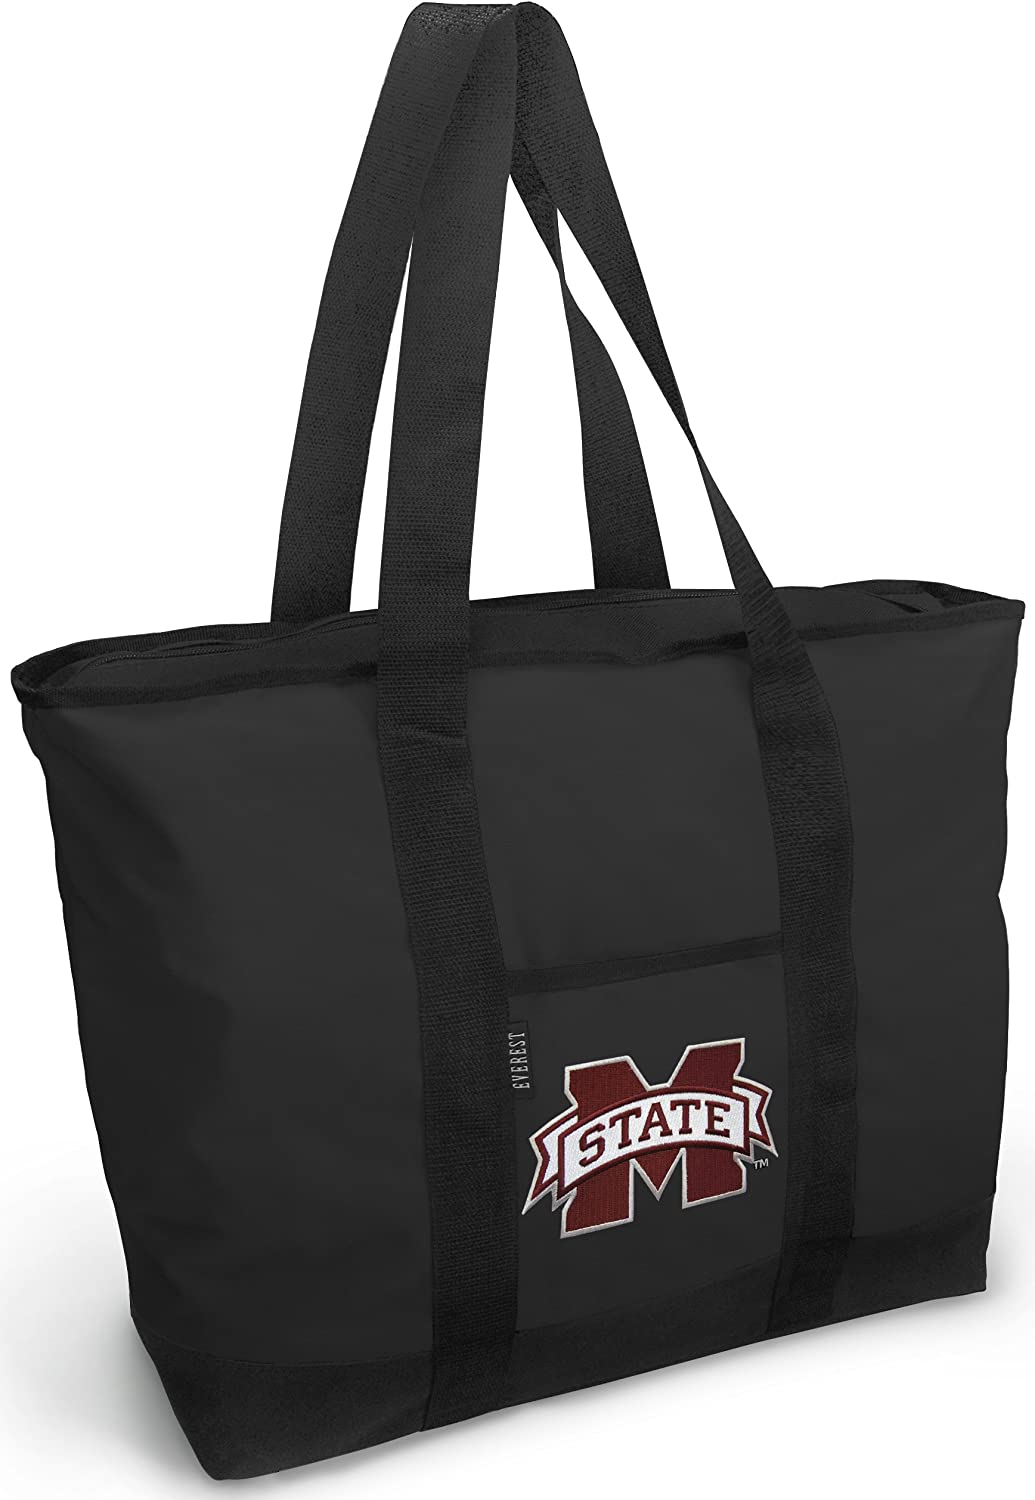 Mississippi State University Tote Ranking TOP16 Bag Totes Best SH MSU Bulldogs half